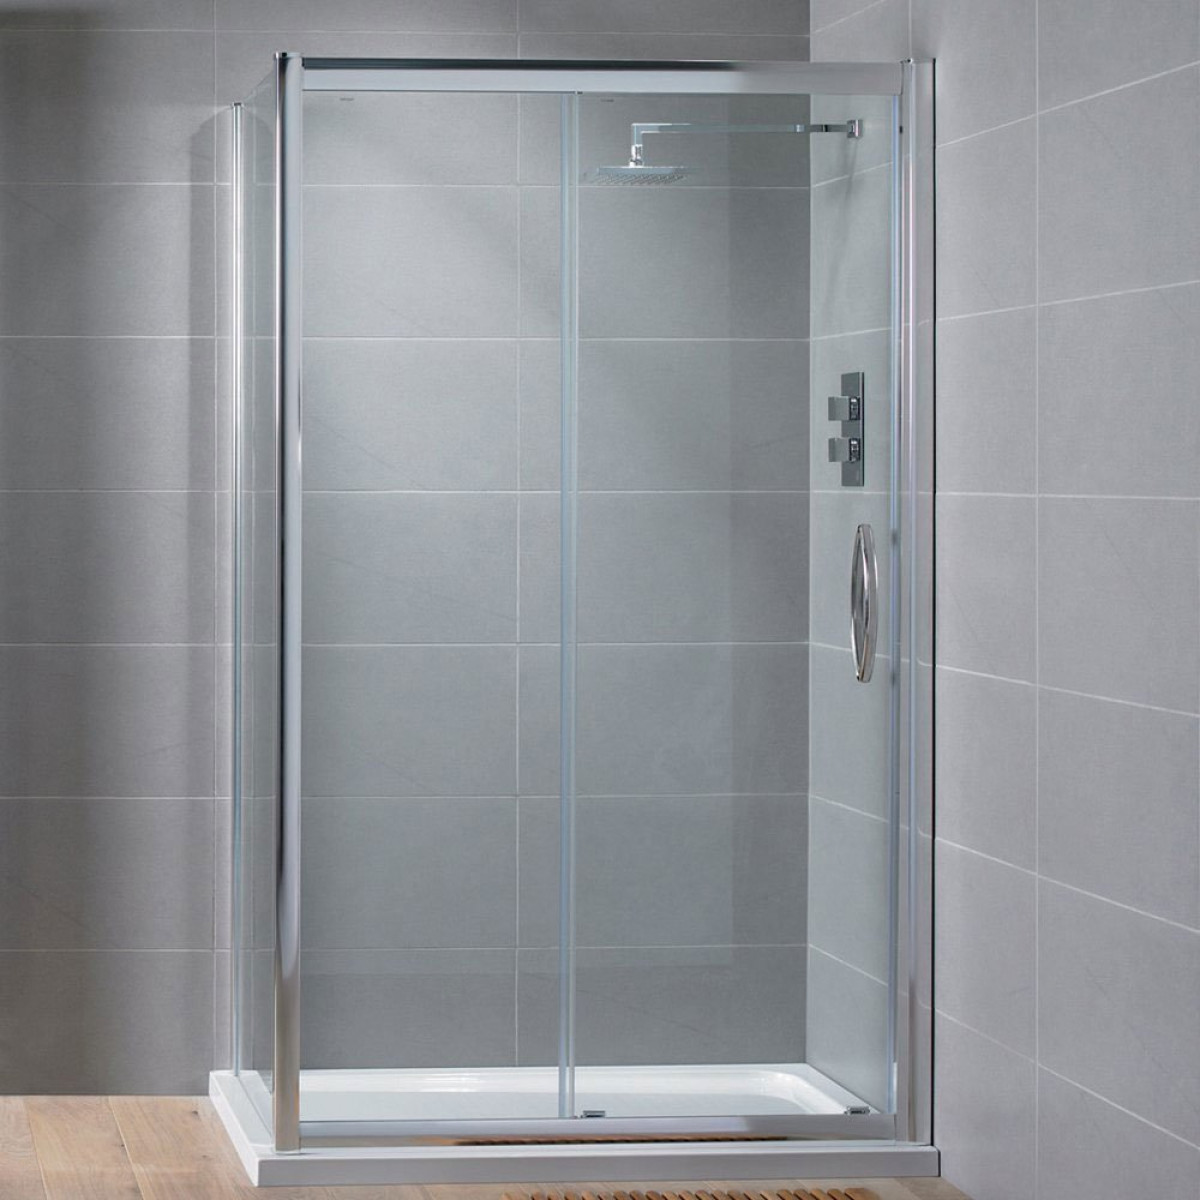 Aquadart venturi8 1000mm sliding shower door aq8210s for 1000mm shower door